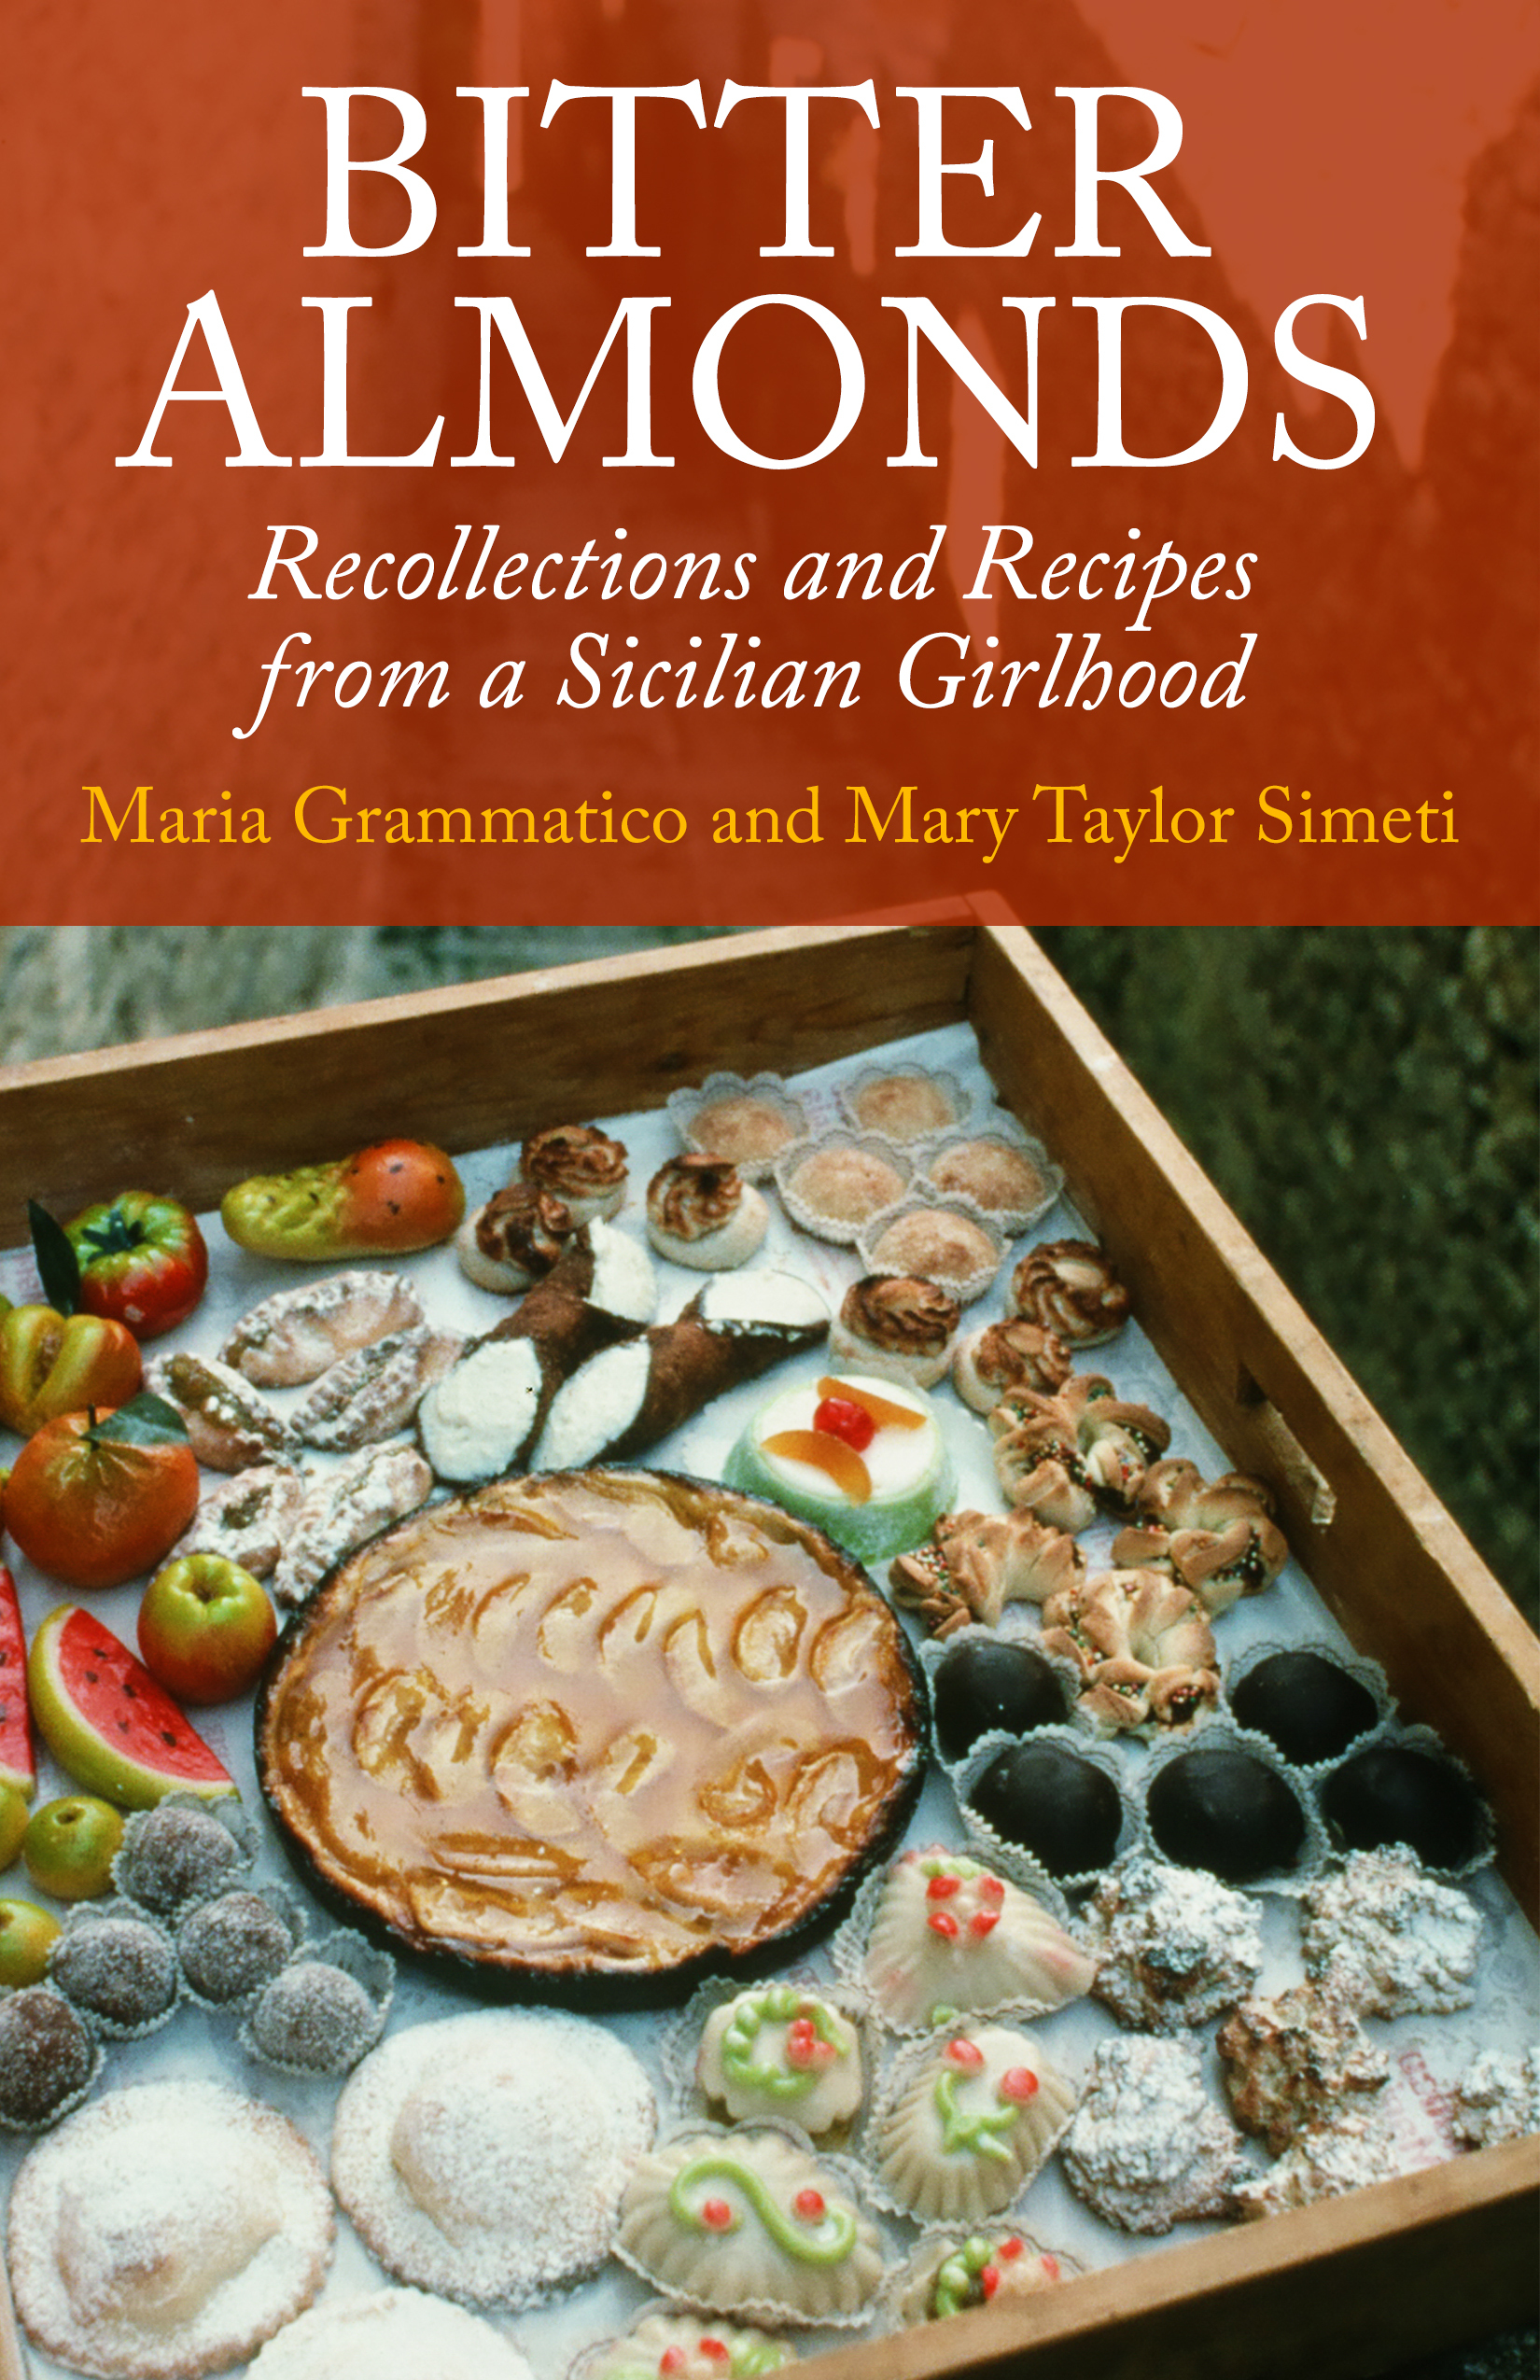 Bitter Almonds: Recollections and Recipes from a Sicilian Girlhood Mary Taylor Simeti